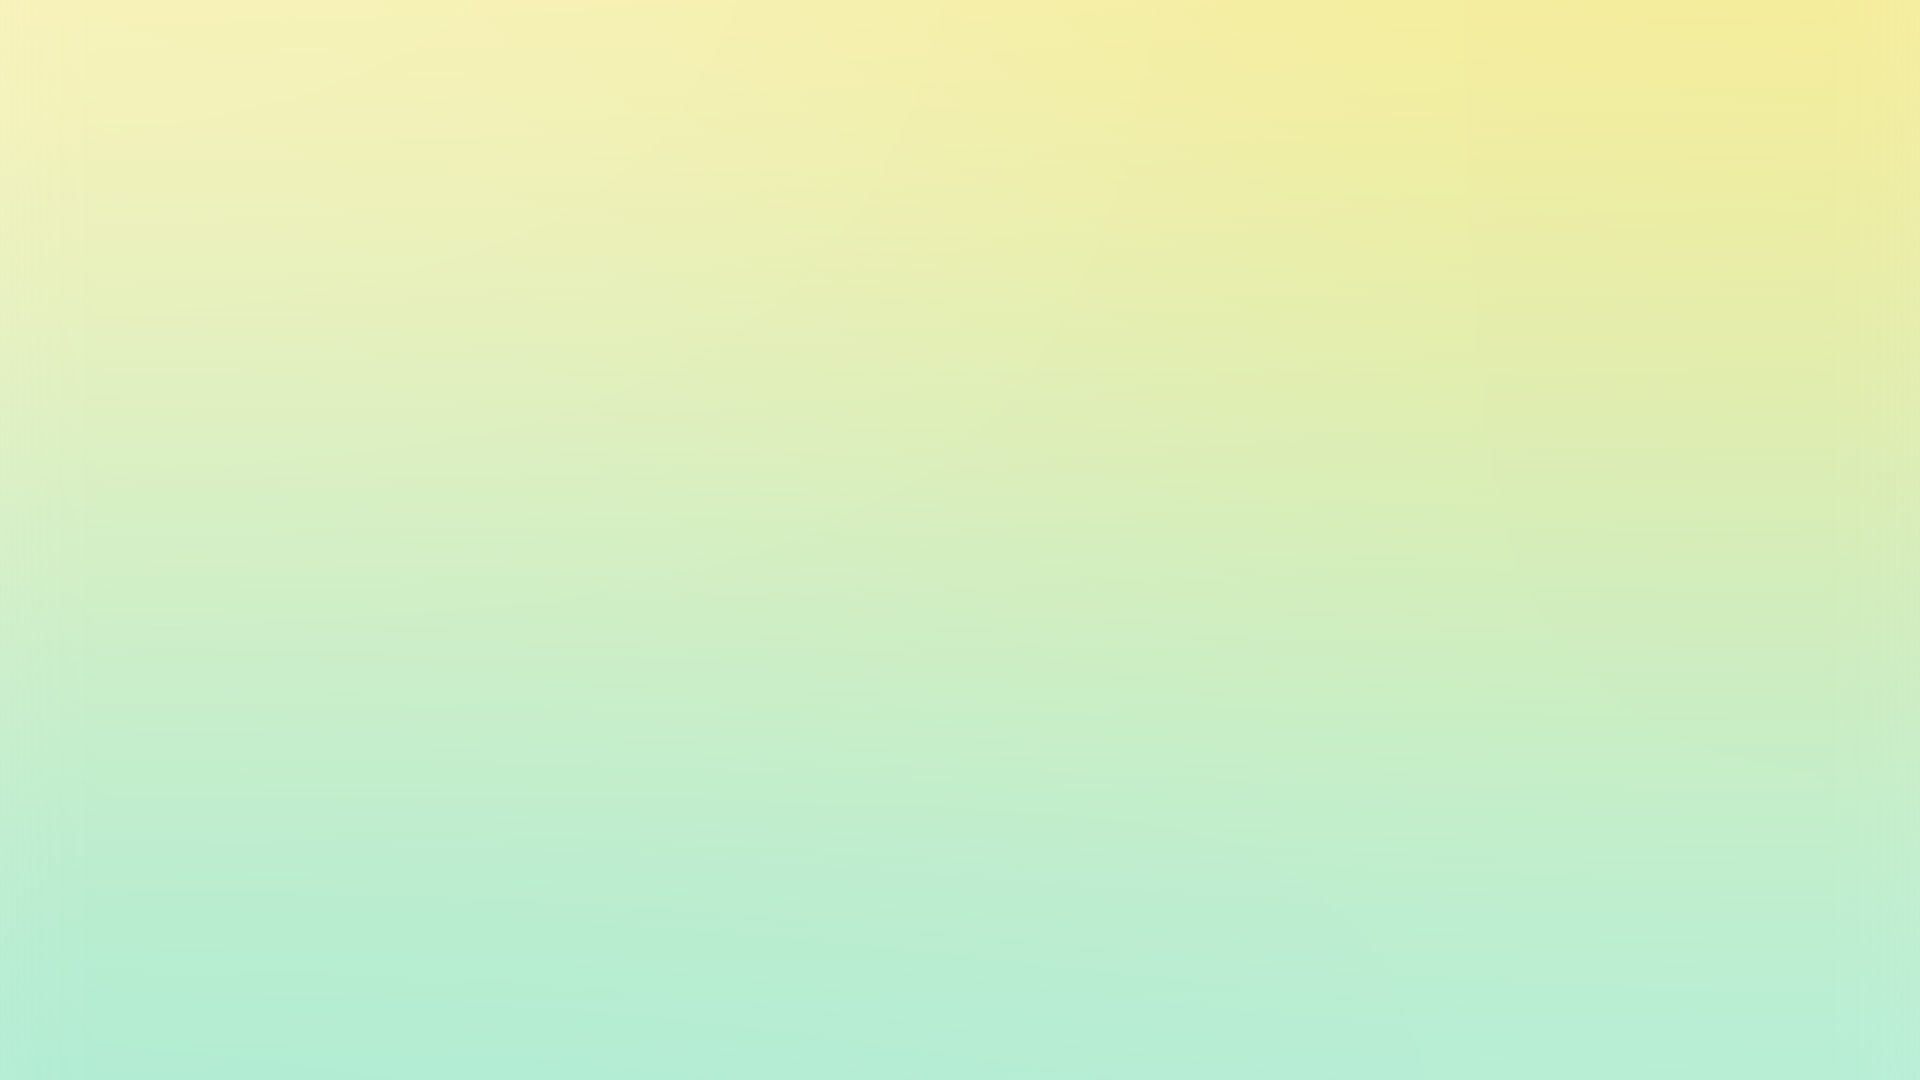 Sl91 Yellow Green Pastel Blur Gradation Wallpaper